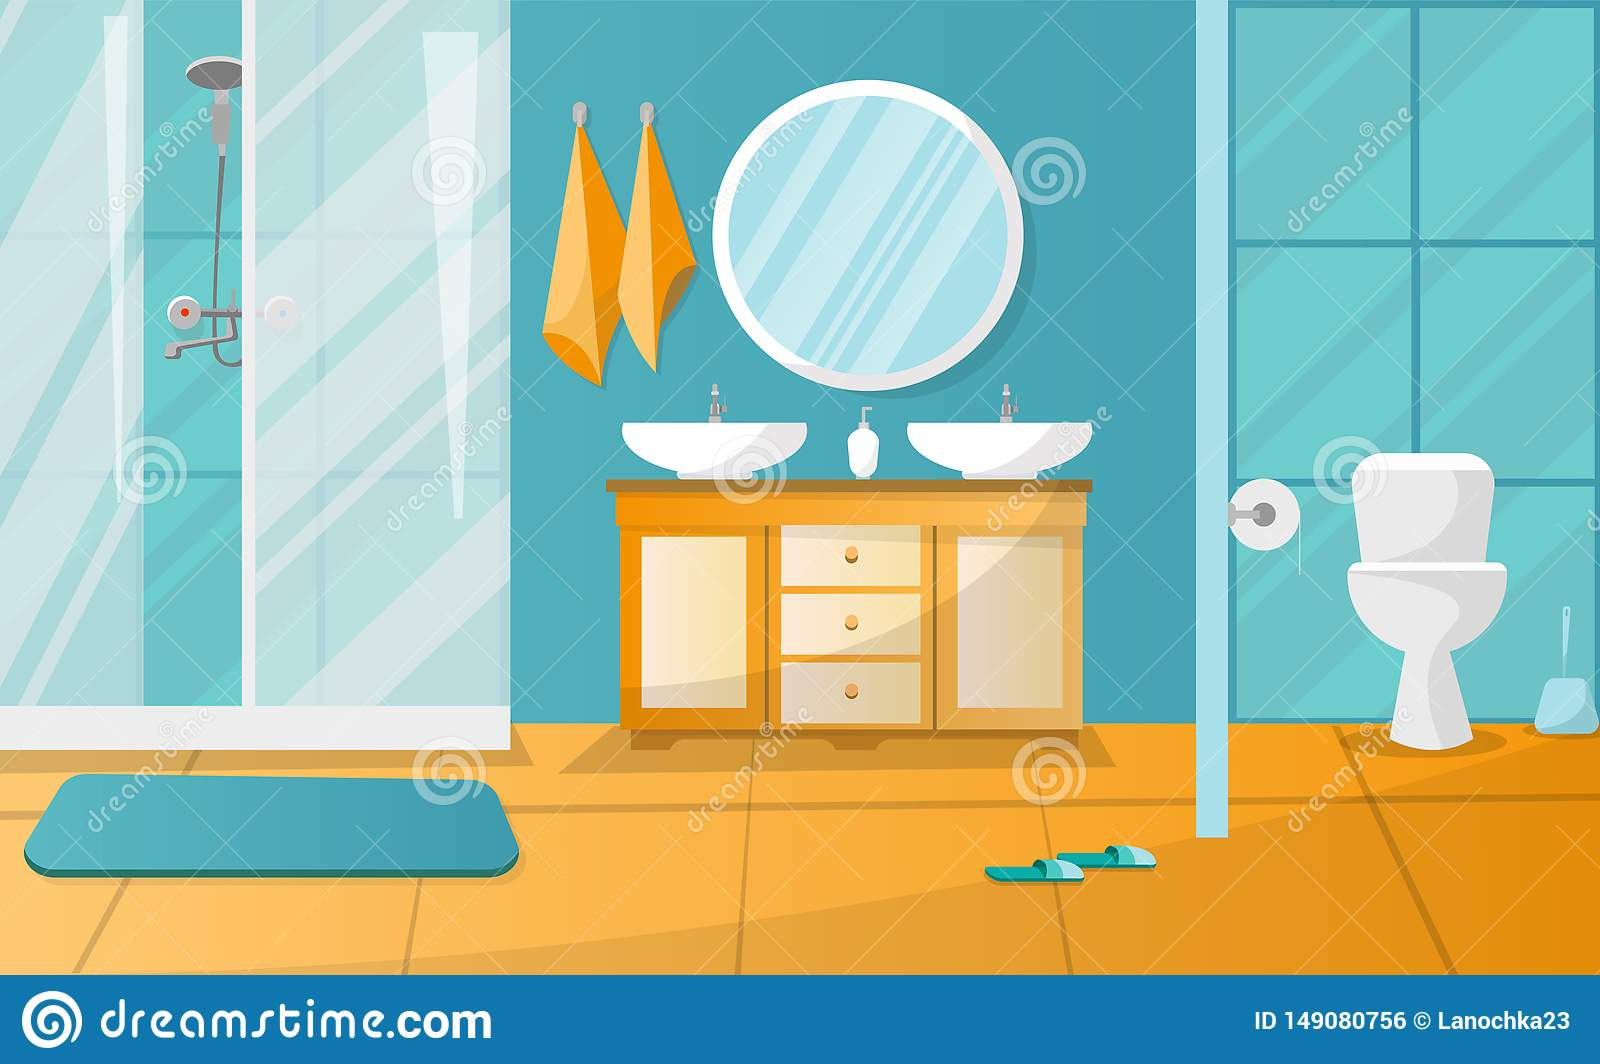 Modern bathroom interior with shower cabin. Bathroom furniture - stand with two sinks, towels, liquid soap, roundl mirror, toilet